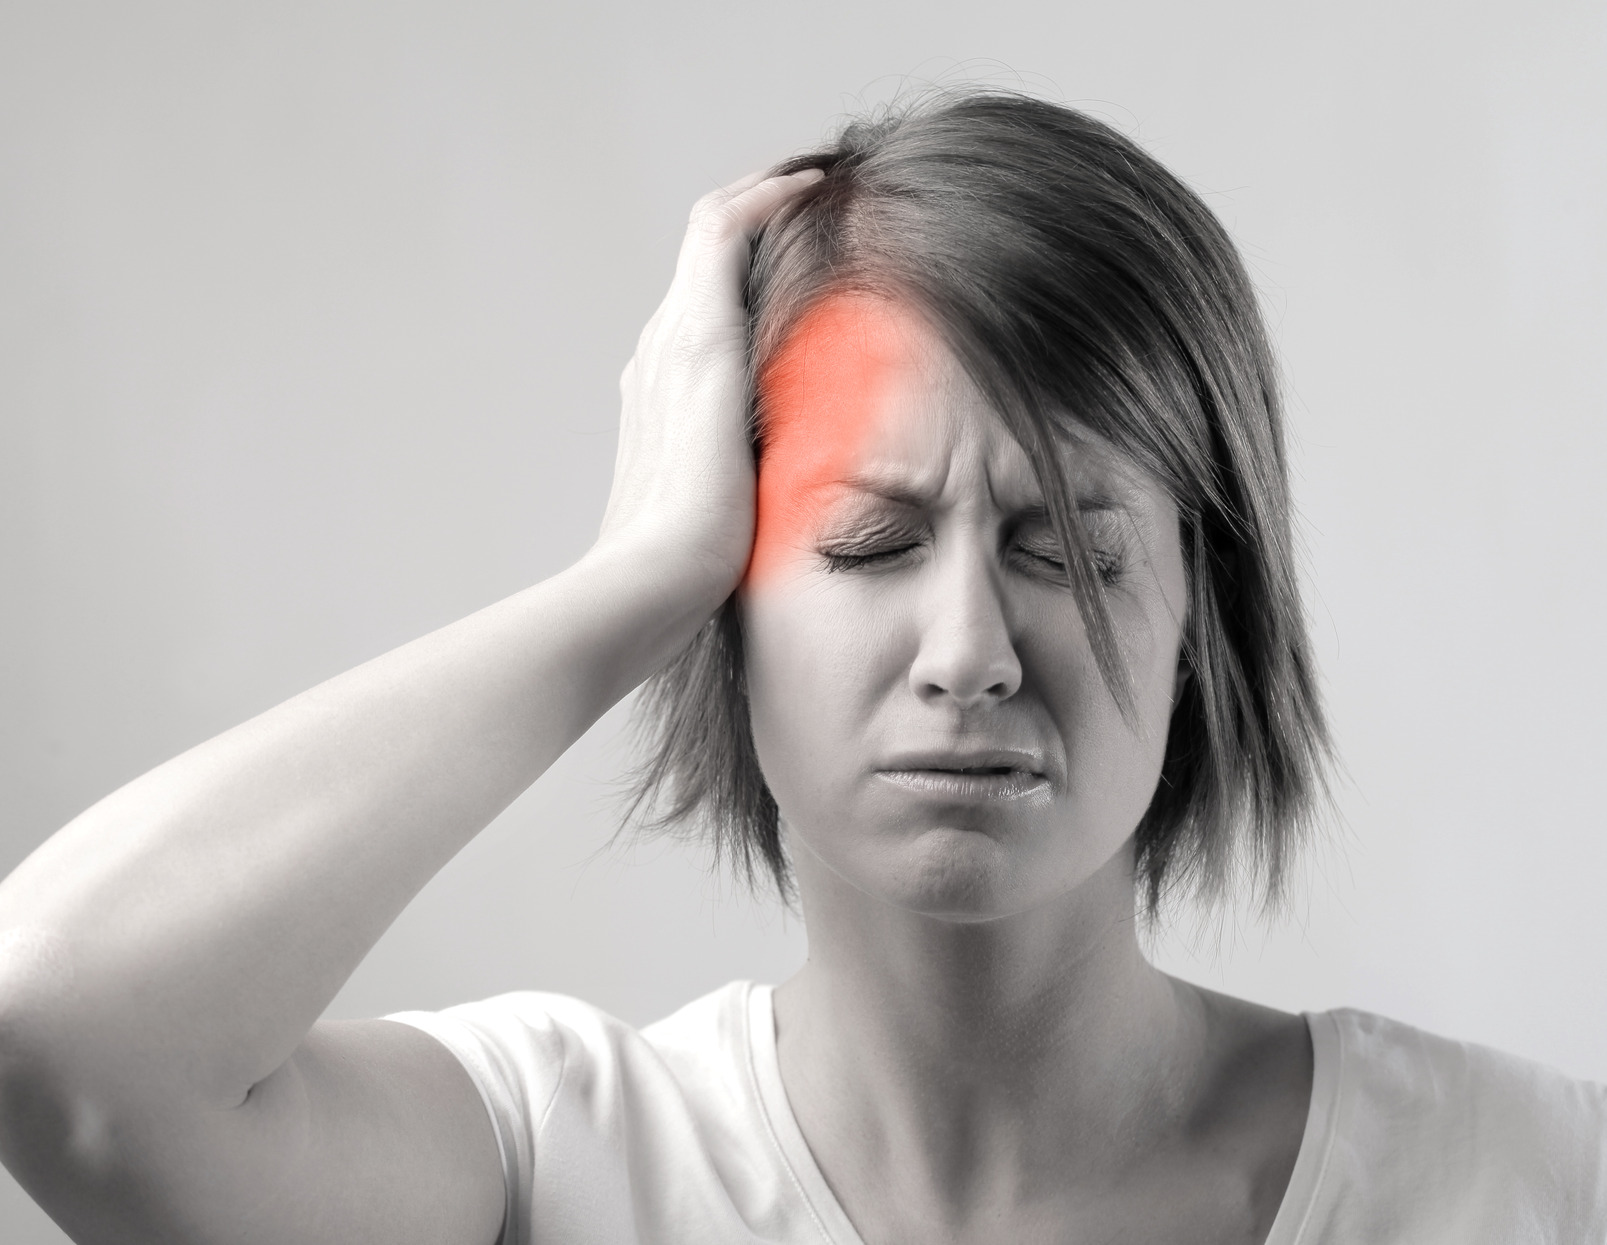 Migraines - caused by neck pain.